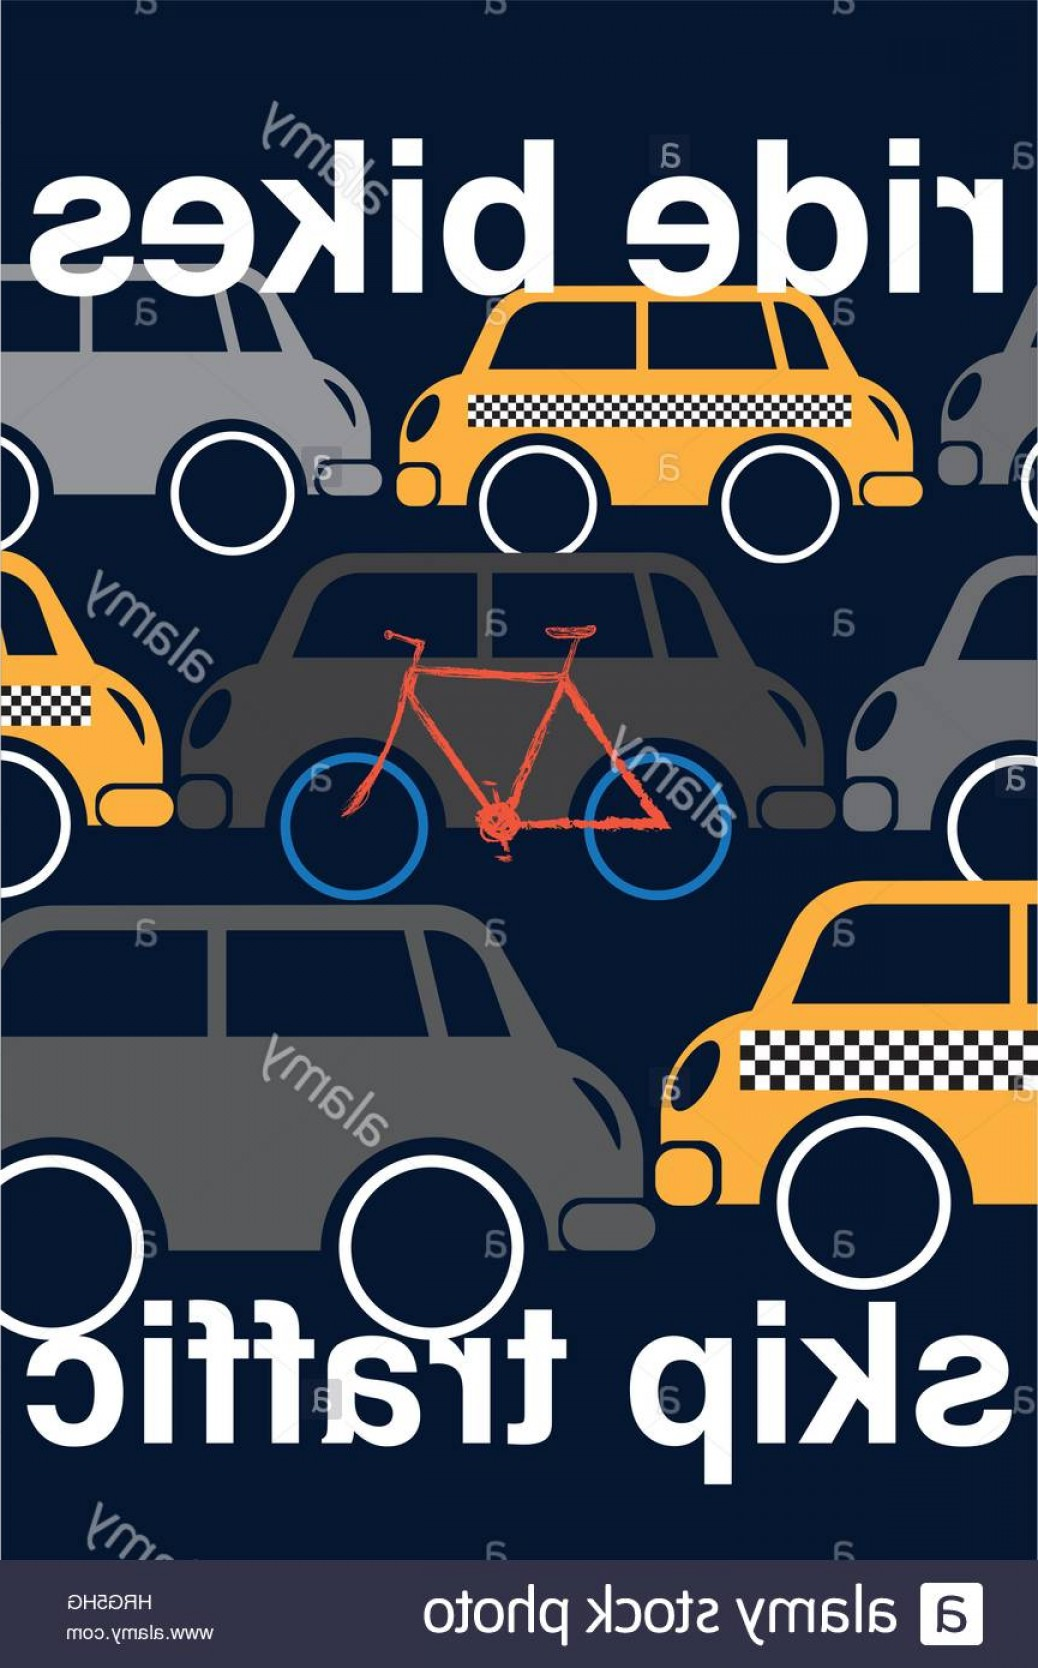 Vector Straightforward: Stock Photo Straightforward Image Shows How Choosing Bikes Over Cars Is An Excellent